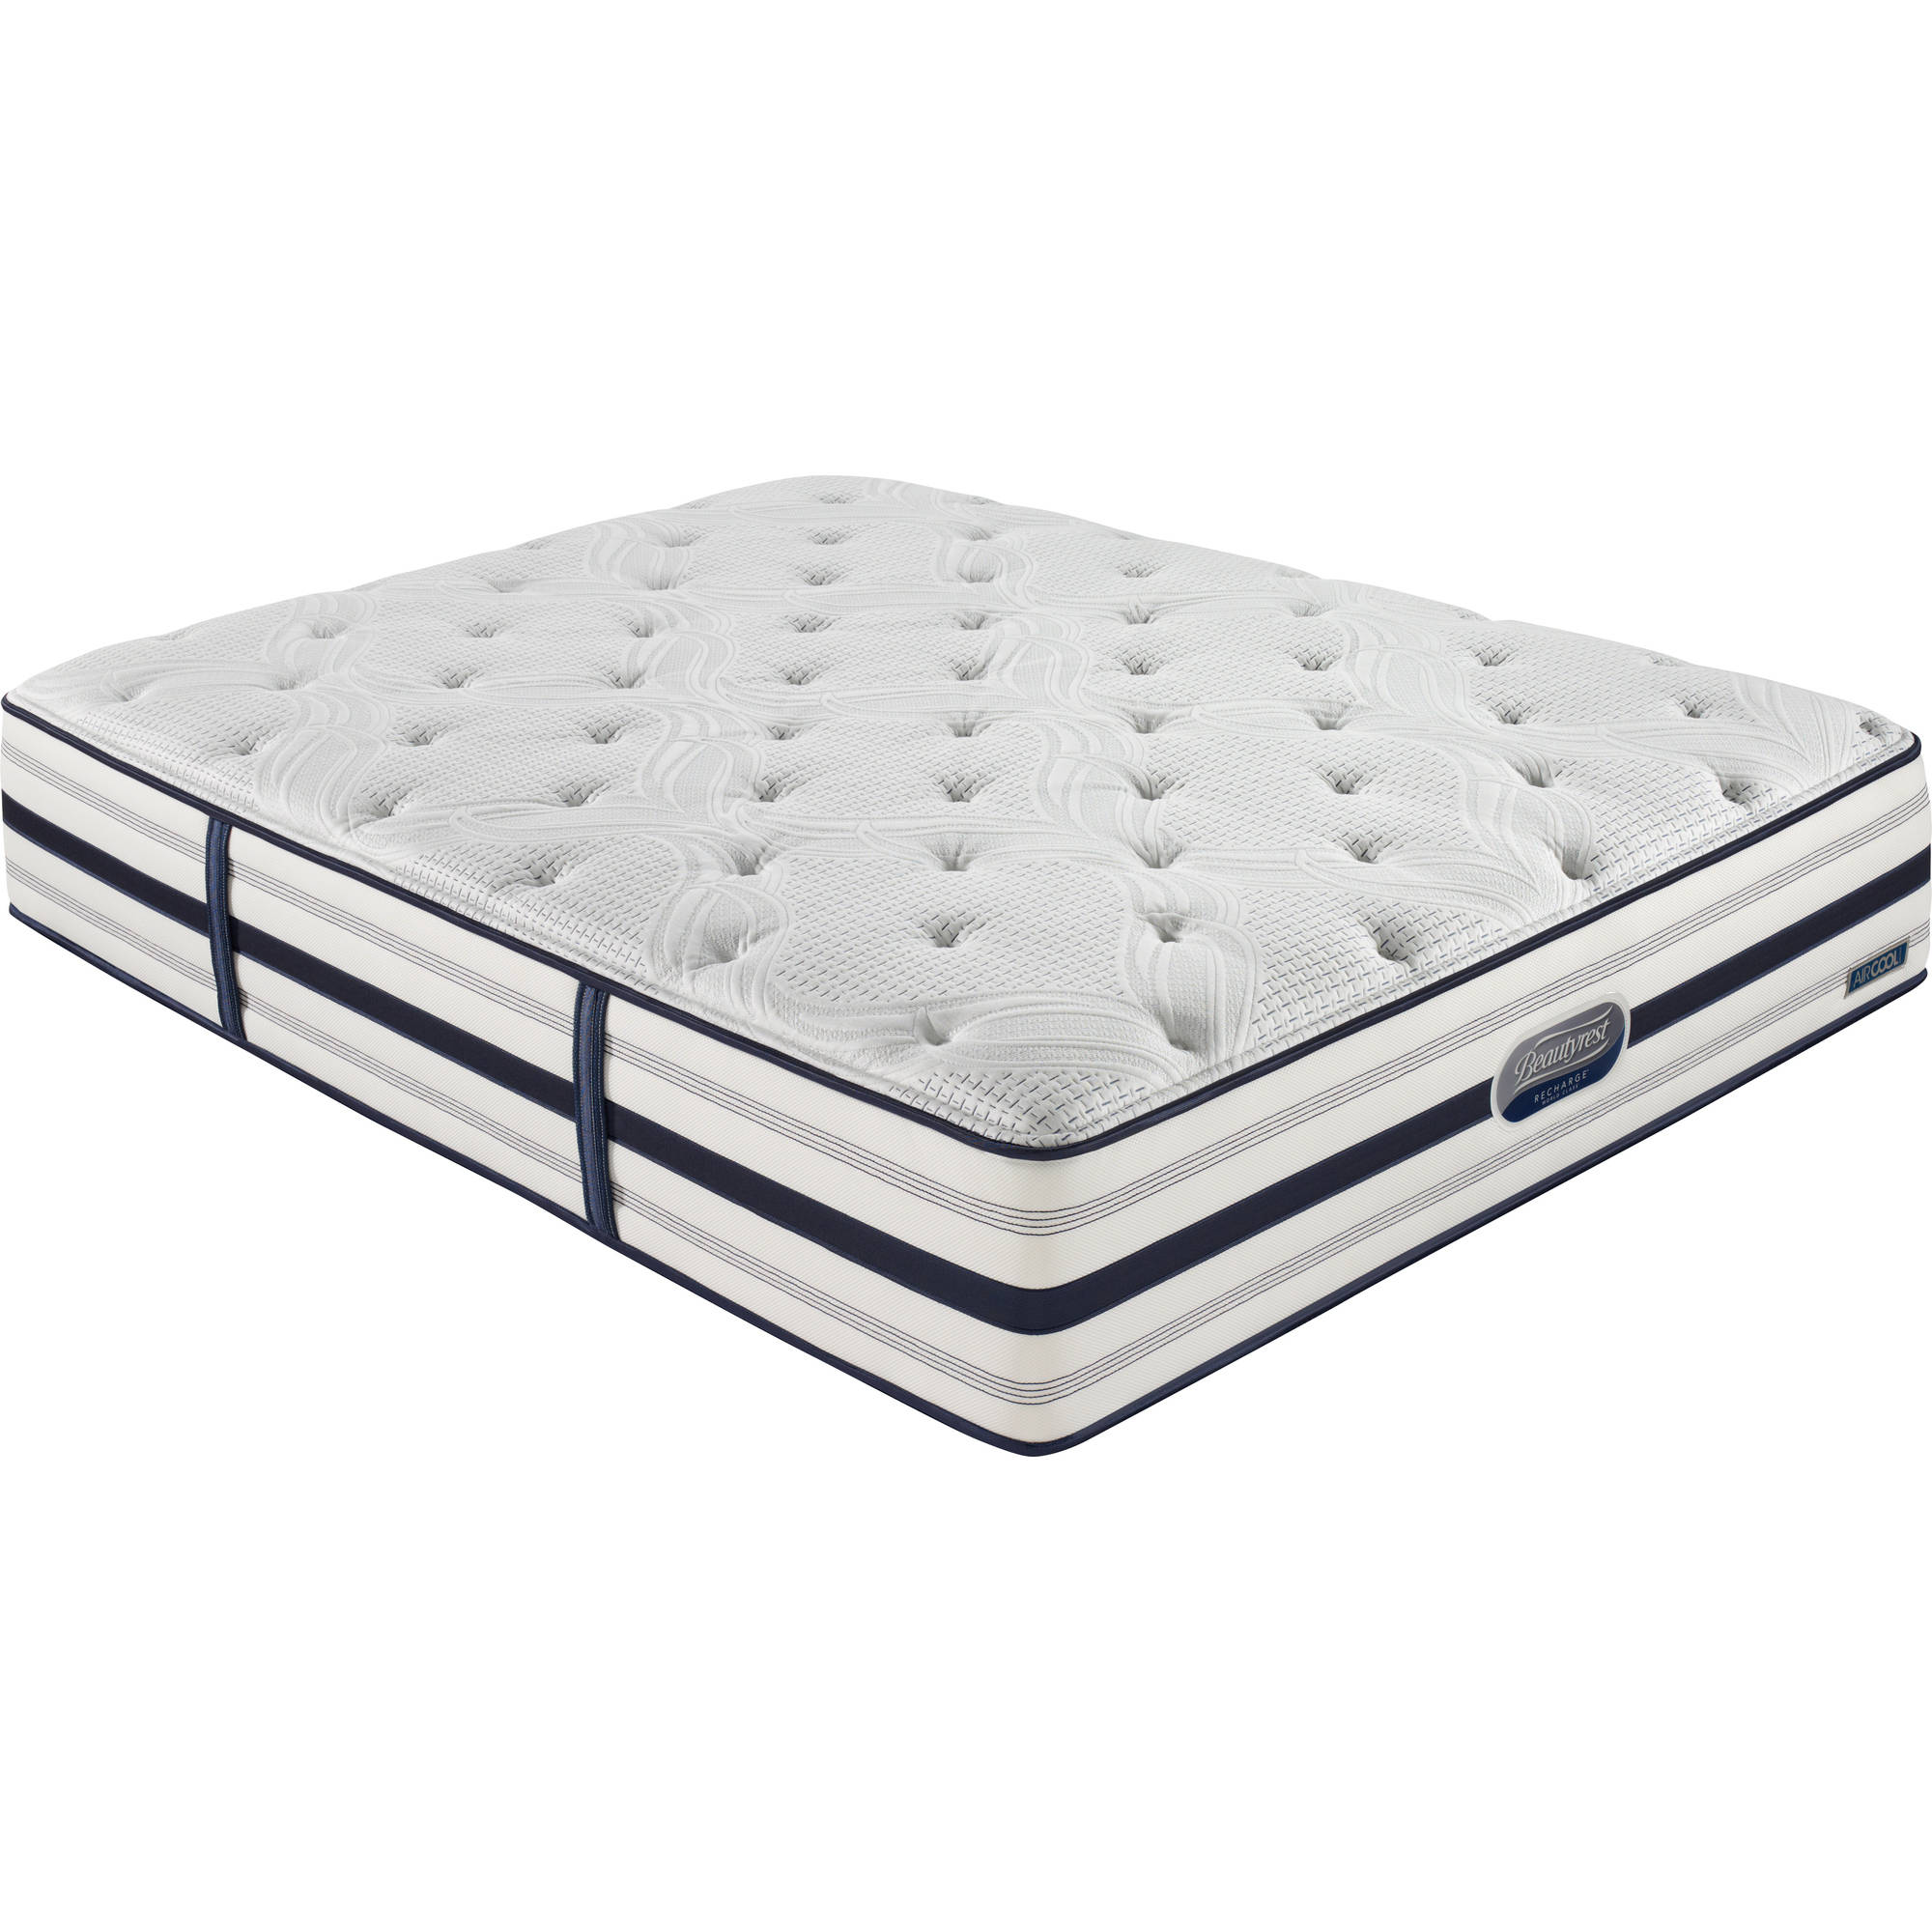 "Beautyrest Recharge World Class Midtown Terrace 12.5"" Pocketed Coil Firm Mattress with TruTemp Gel, Multiple Sizes (Includes Free White Glove Delivery)"